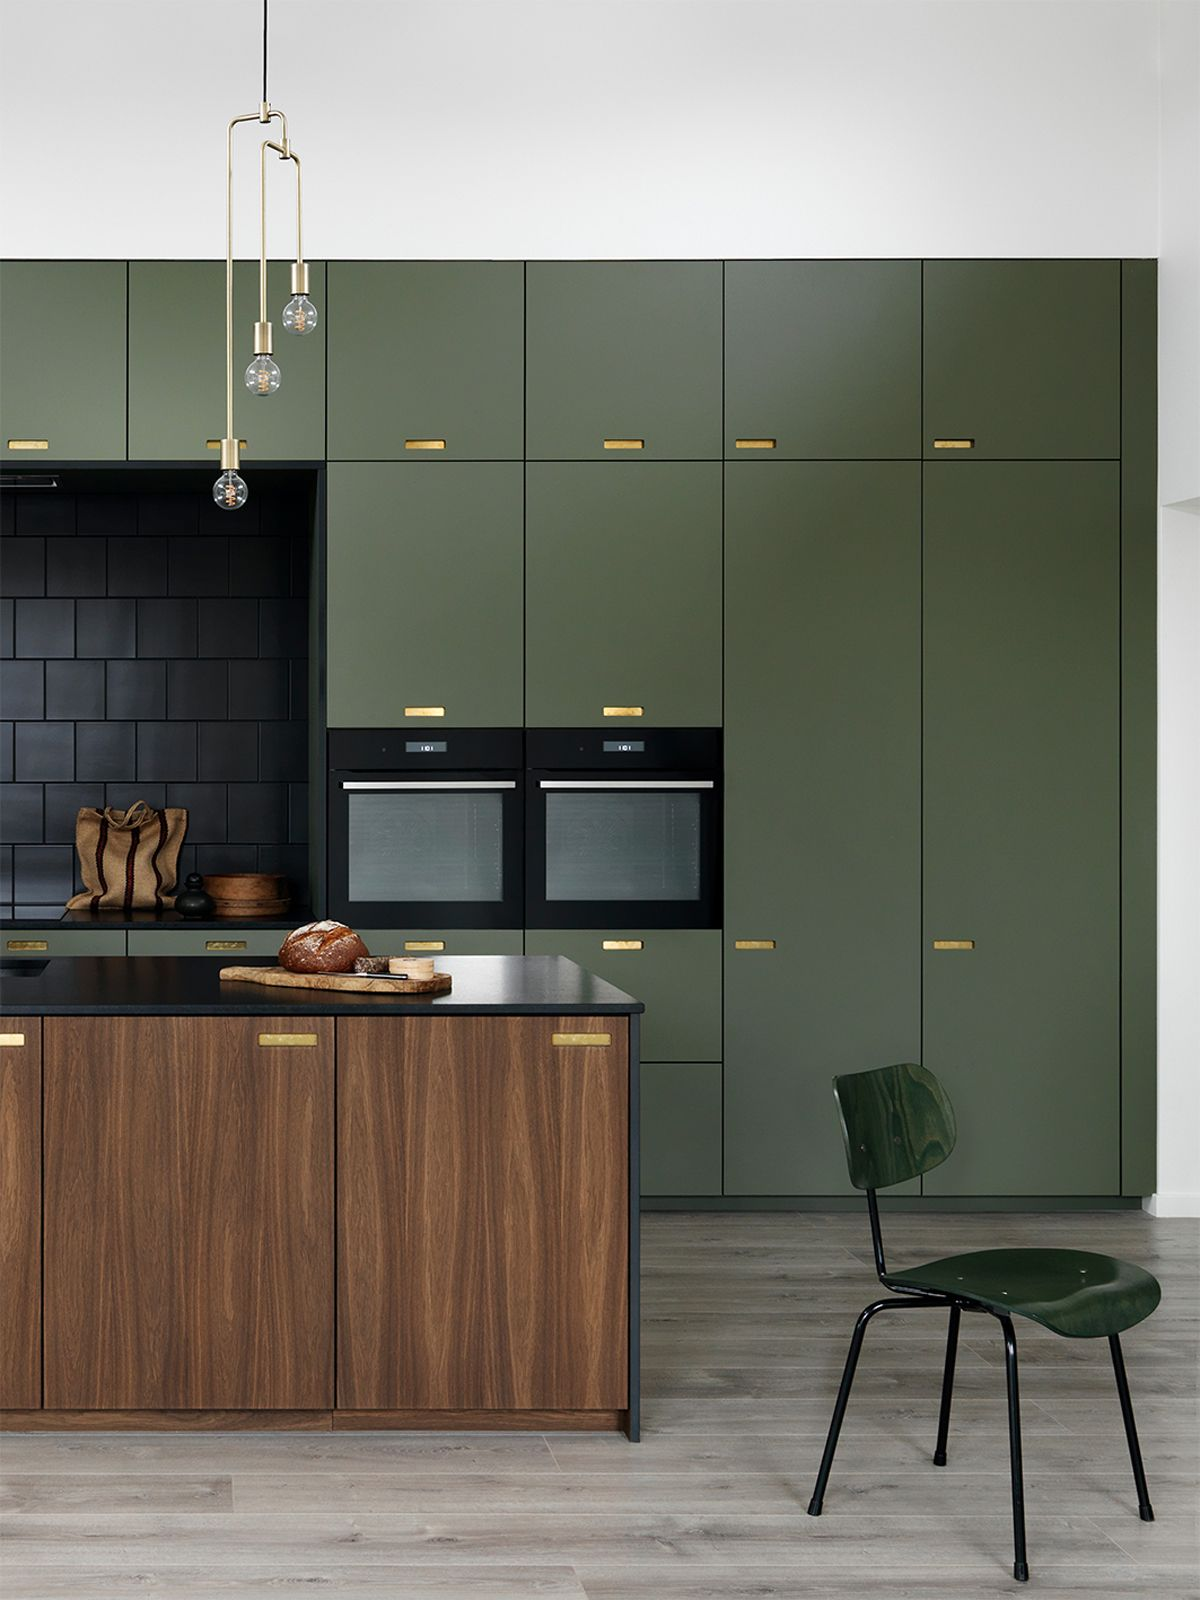 kitchen, wooden floor, white wall, green cabinet, wooden island with black top, pendants